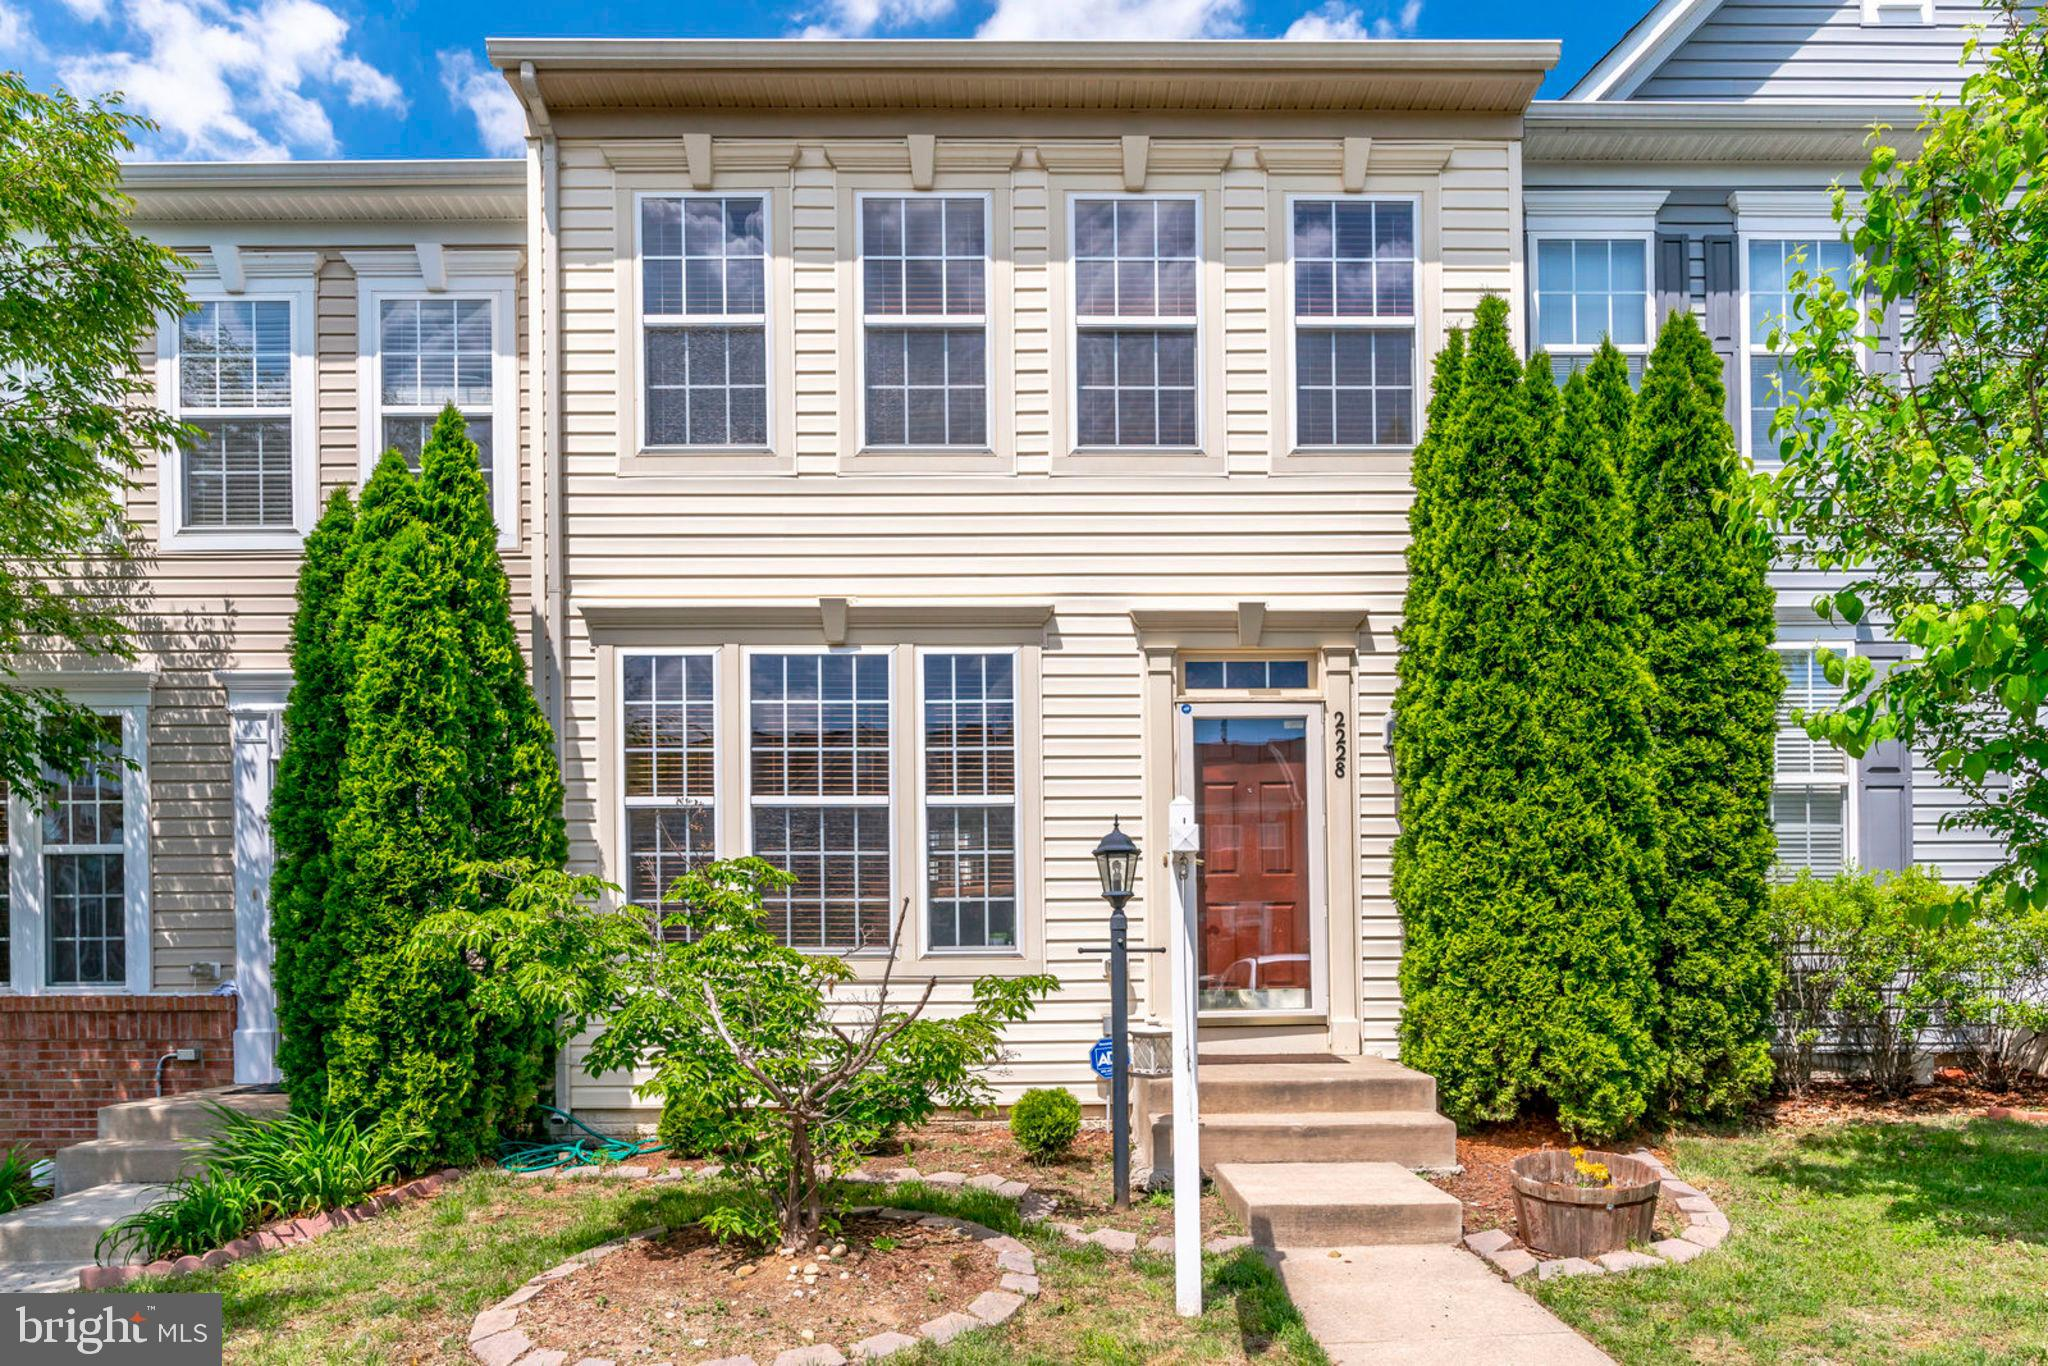 Very close to Stonebridge and Rippon VRE station. Very well maintained unit with Hardwoods, granite, stainless, bedroom level laundry and walk in closets. New photos coming 5/4/19, but don't wait to show, this one won't last. Tenant will be out in mid-June.